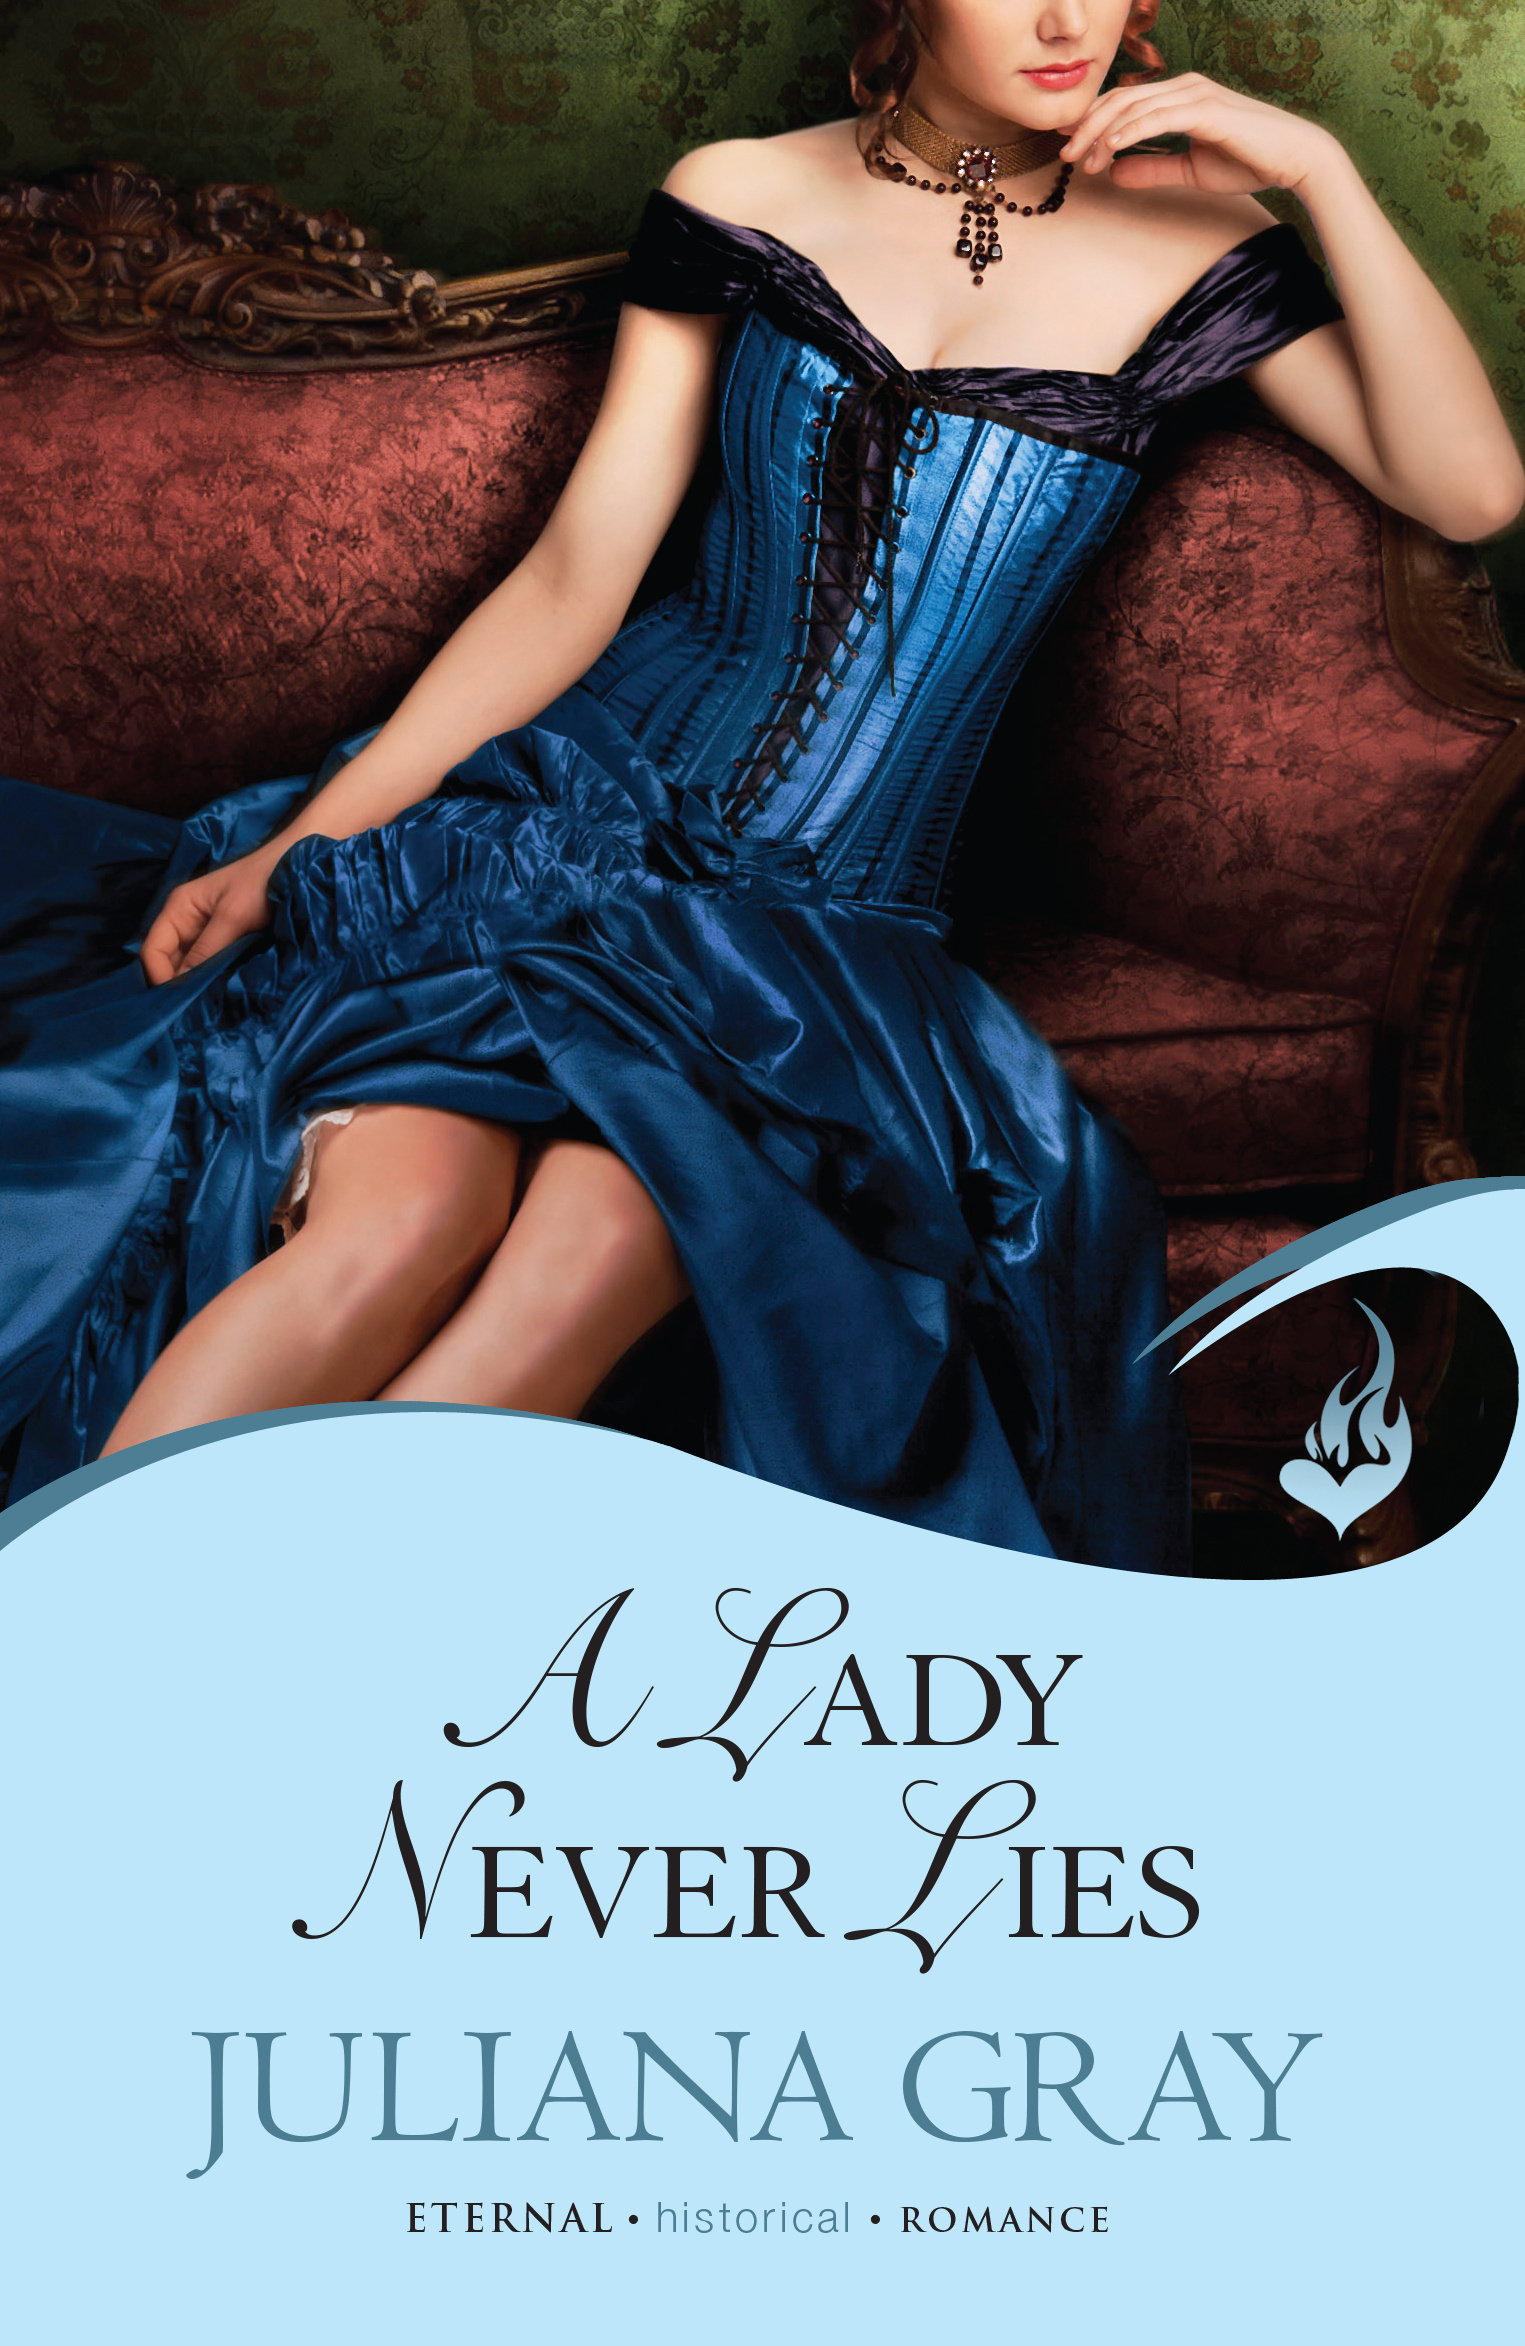 A Lady Never Lies: Affairs By Moonlight Book 1